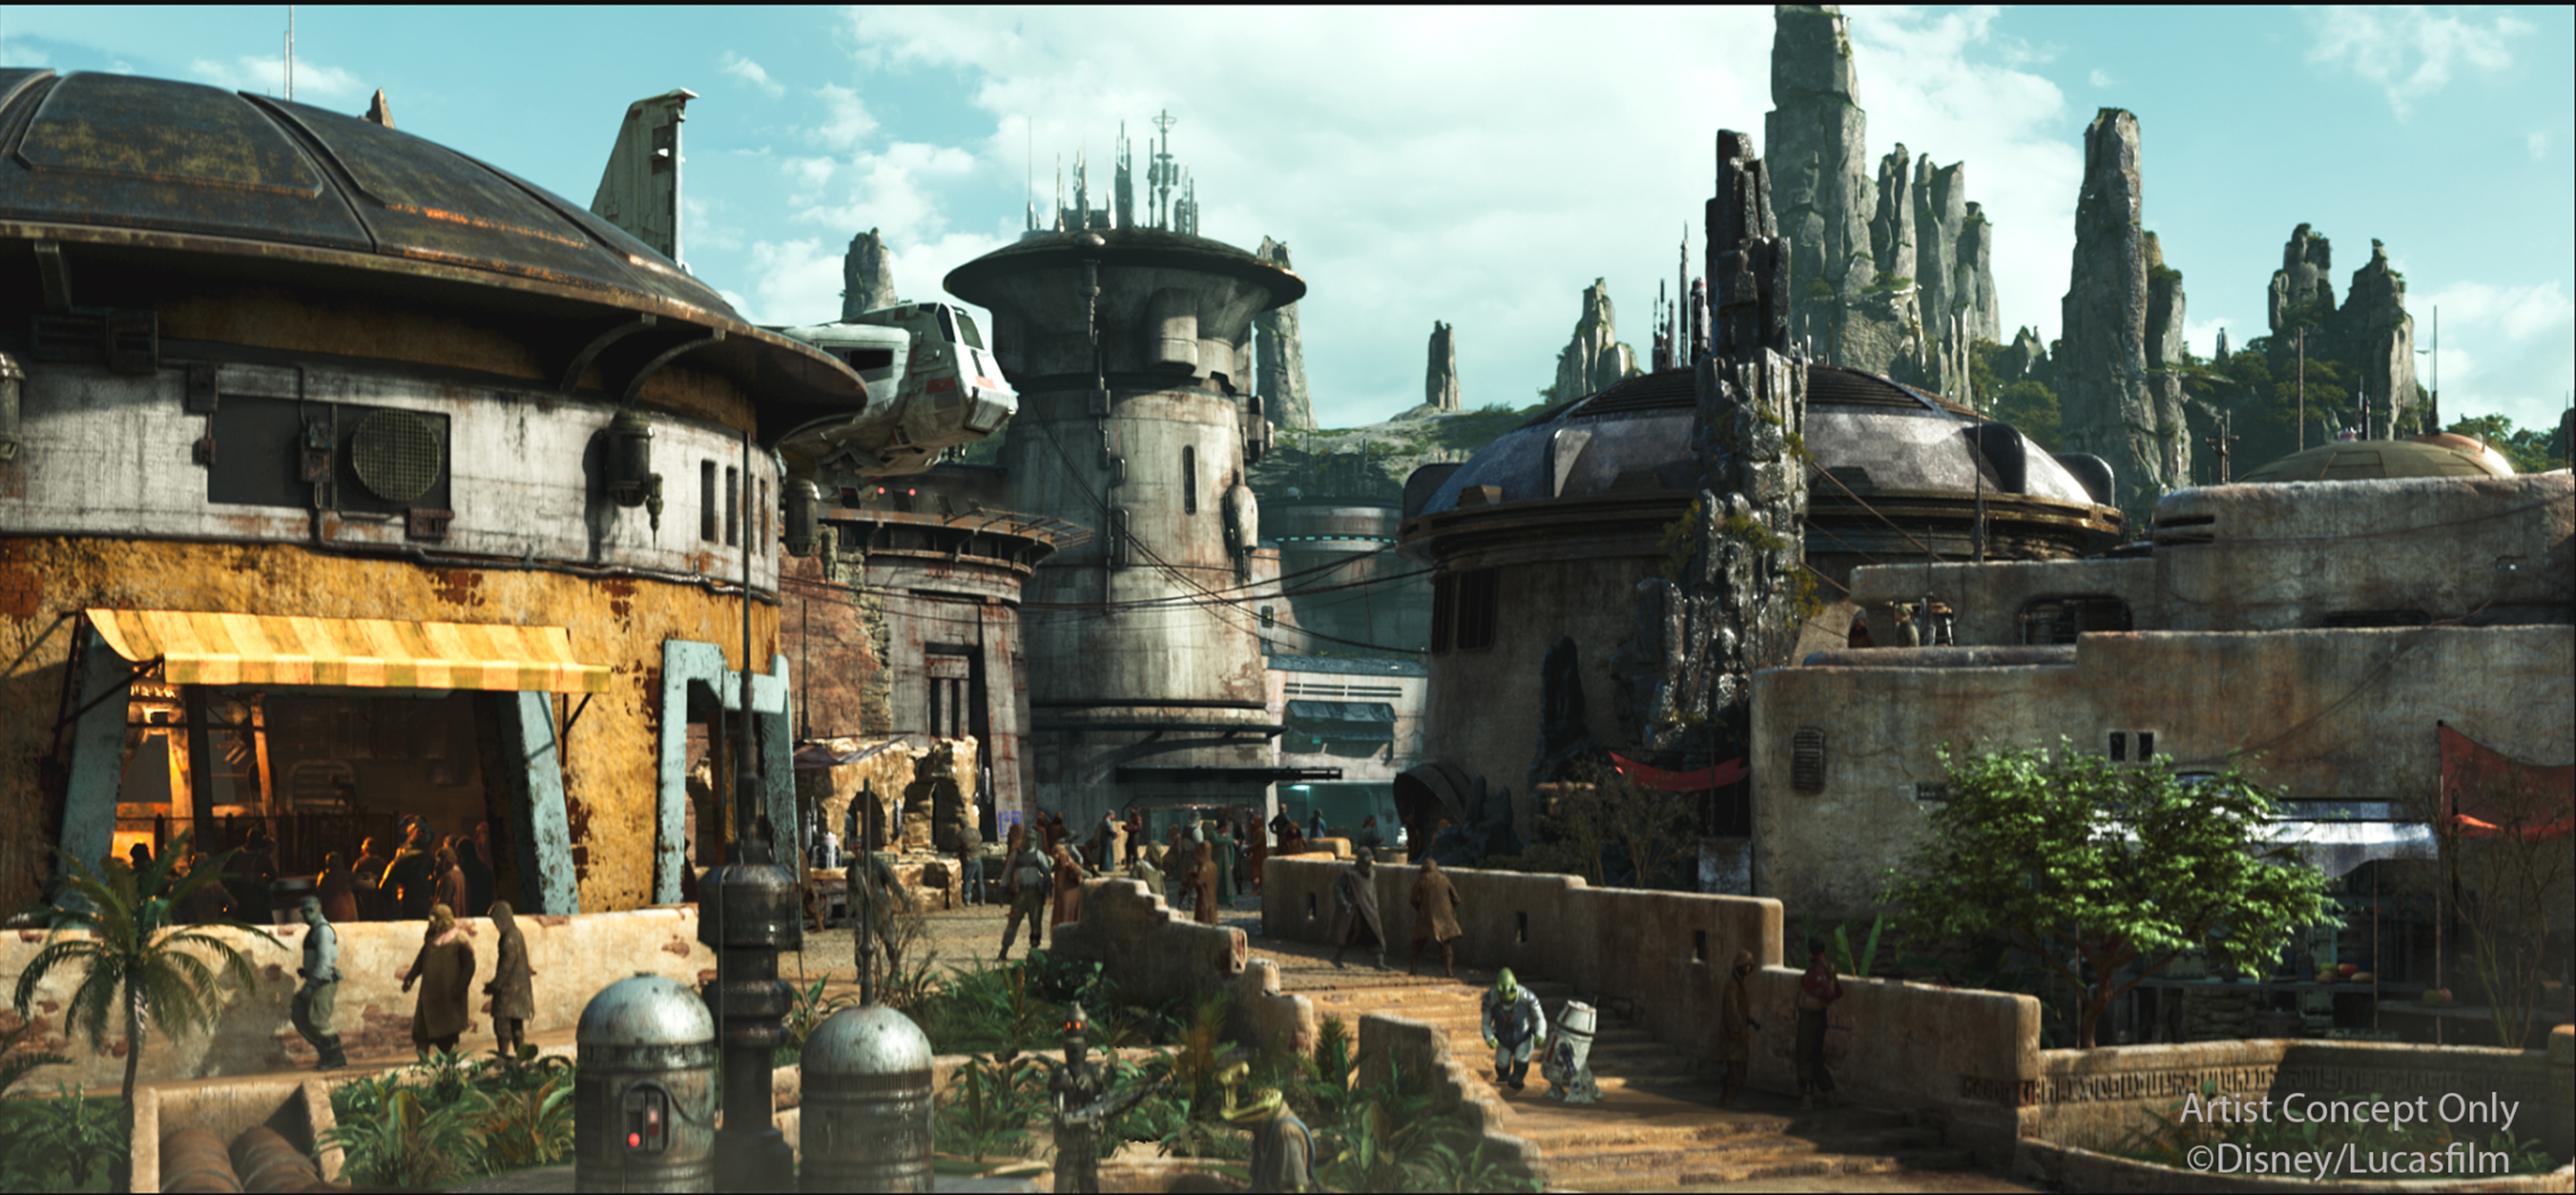 Details About Black Spire Outpost on Star Wars: Galaxy's Edge Planet Batuu Revealed at Star Wars: Galactic Nights